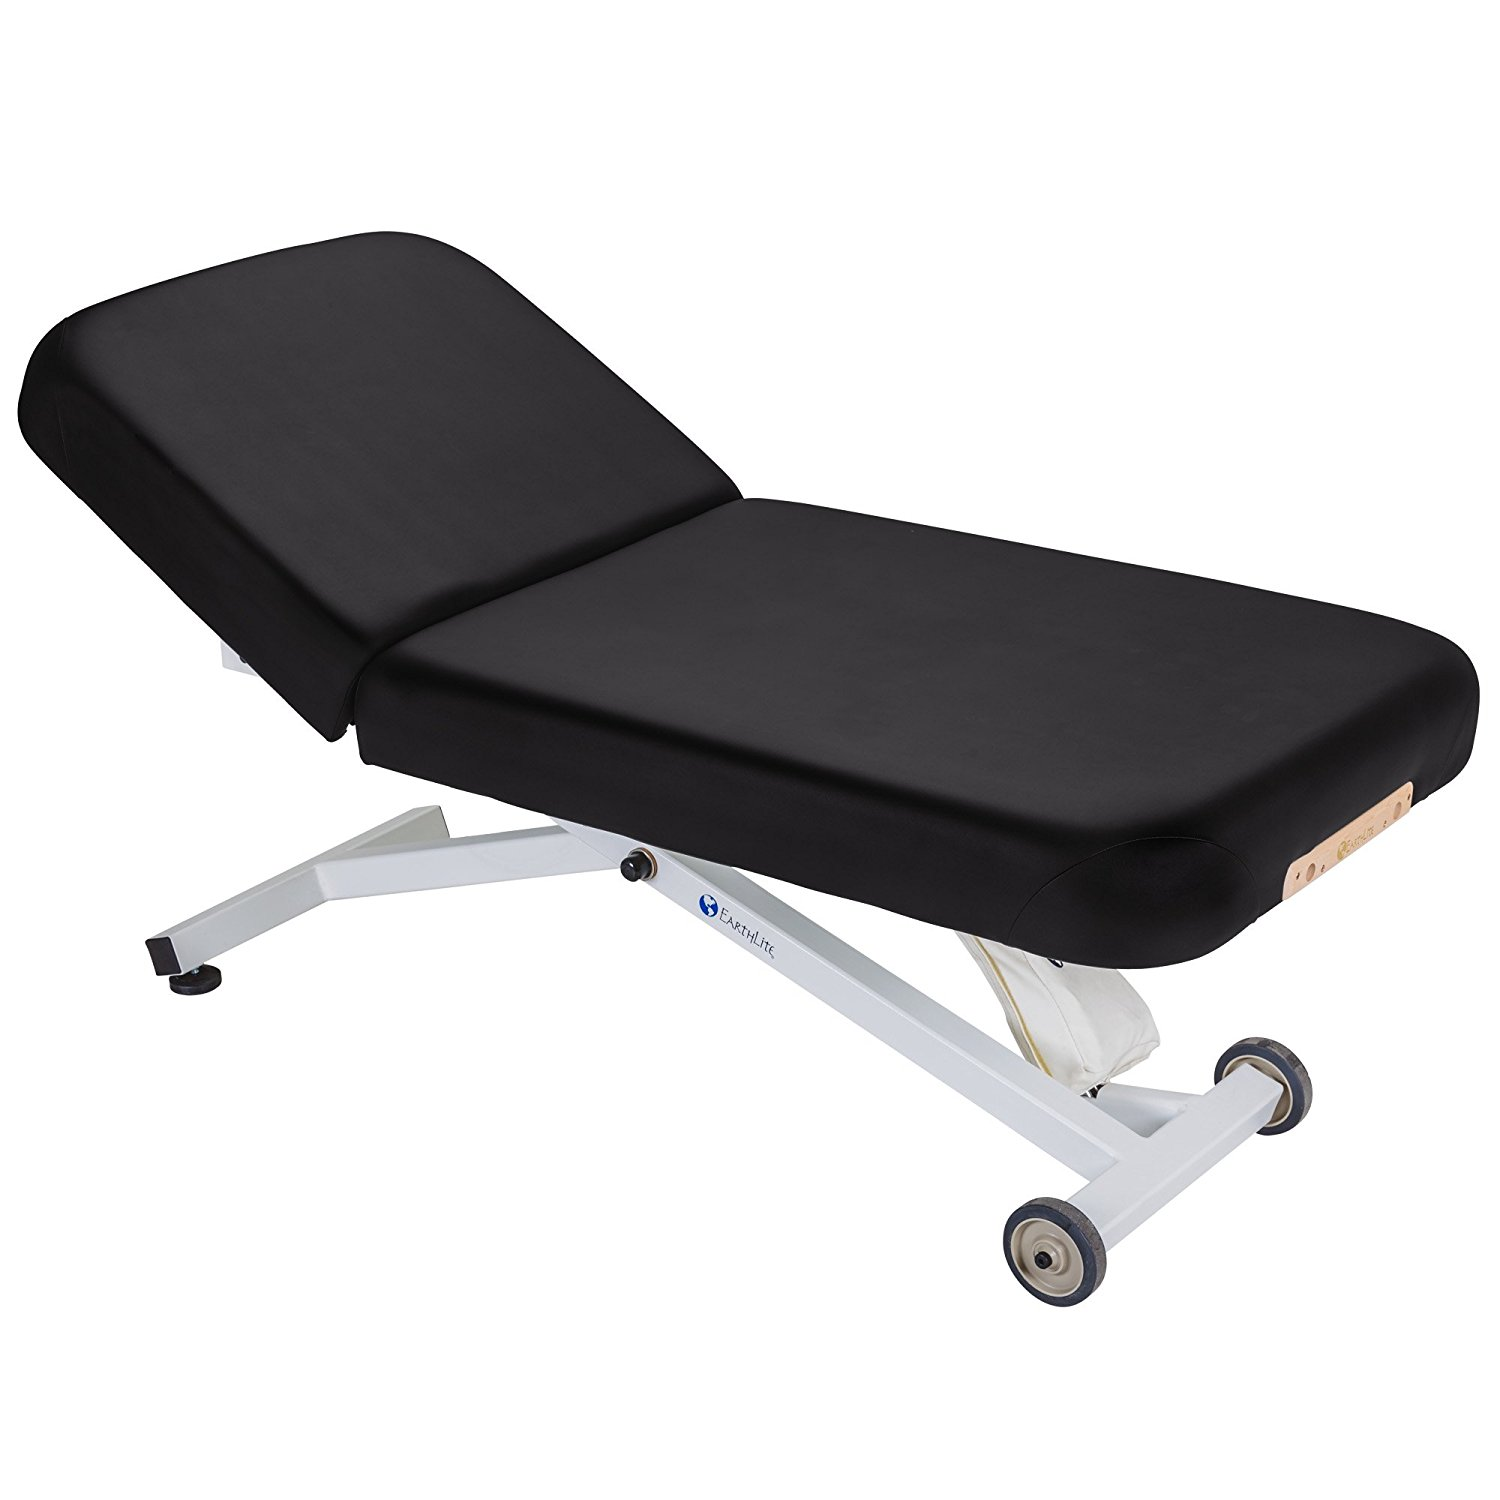 "EARTHLITE Ellora Electric Lift Massage Table - Most Popular Spa Lift Massage Table, Comfortable & Reliable, Tattoo Table Flat/Tilt (28"", 30"", 32"" x 73"", 180lbs)"